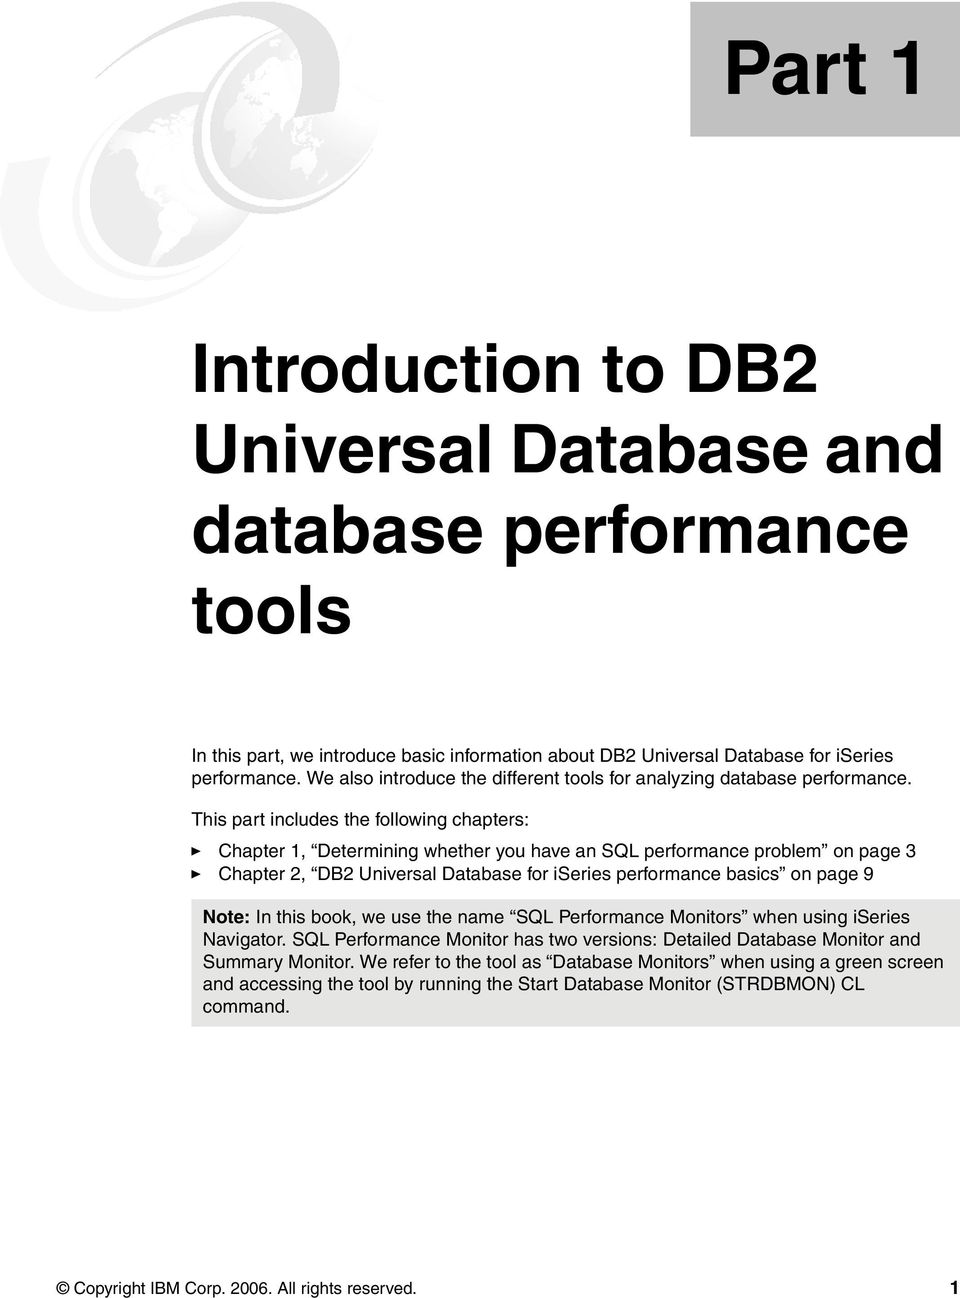 This part includes the following chapters: Chapter 1, Determining whether you have an SQL performance problem on page 3 Chapter 2, DB2 Universal Database for iseries performance basics on page 9